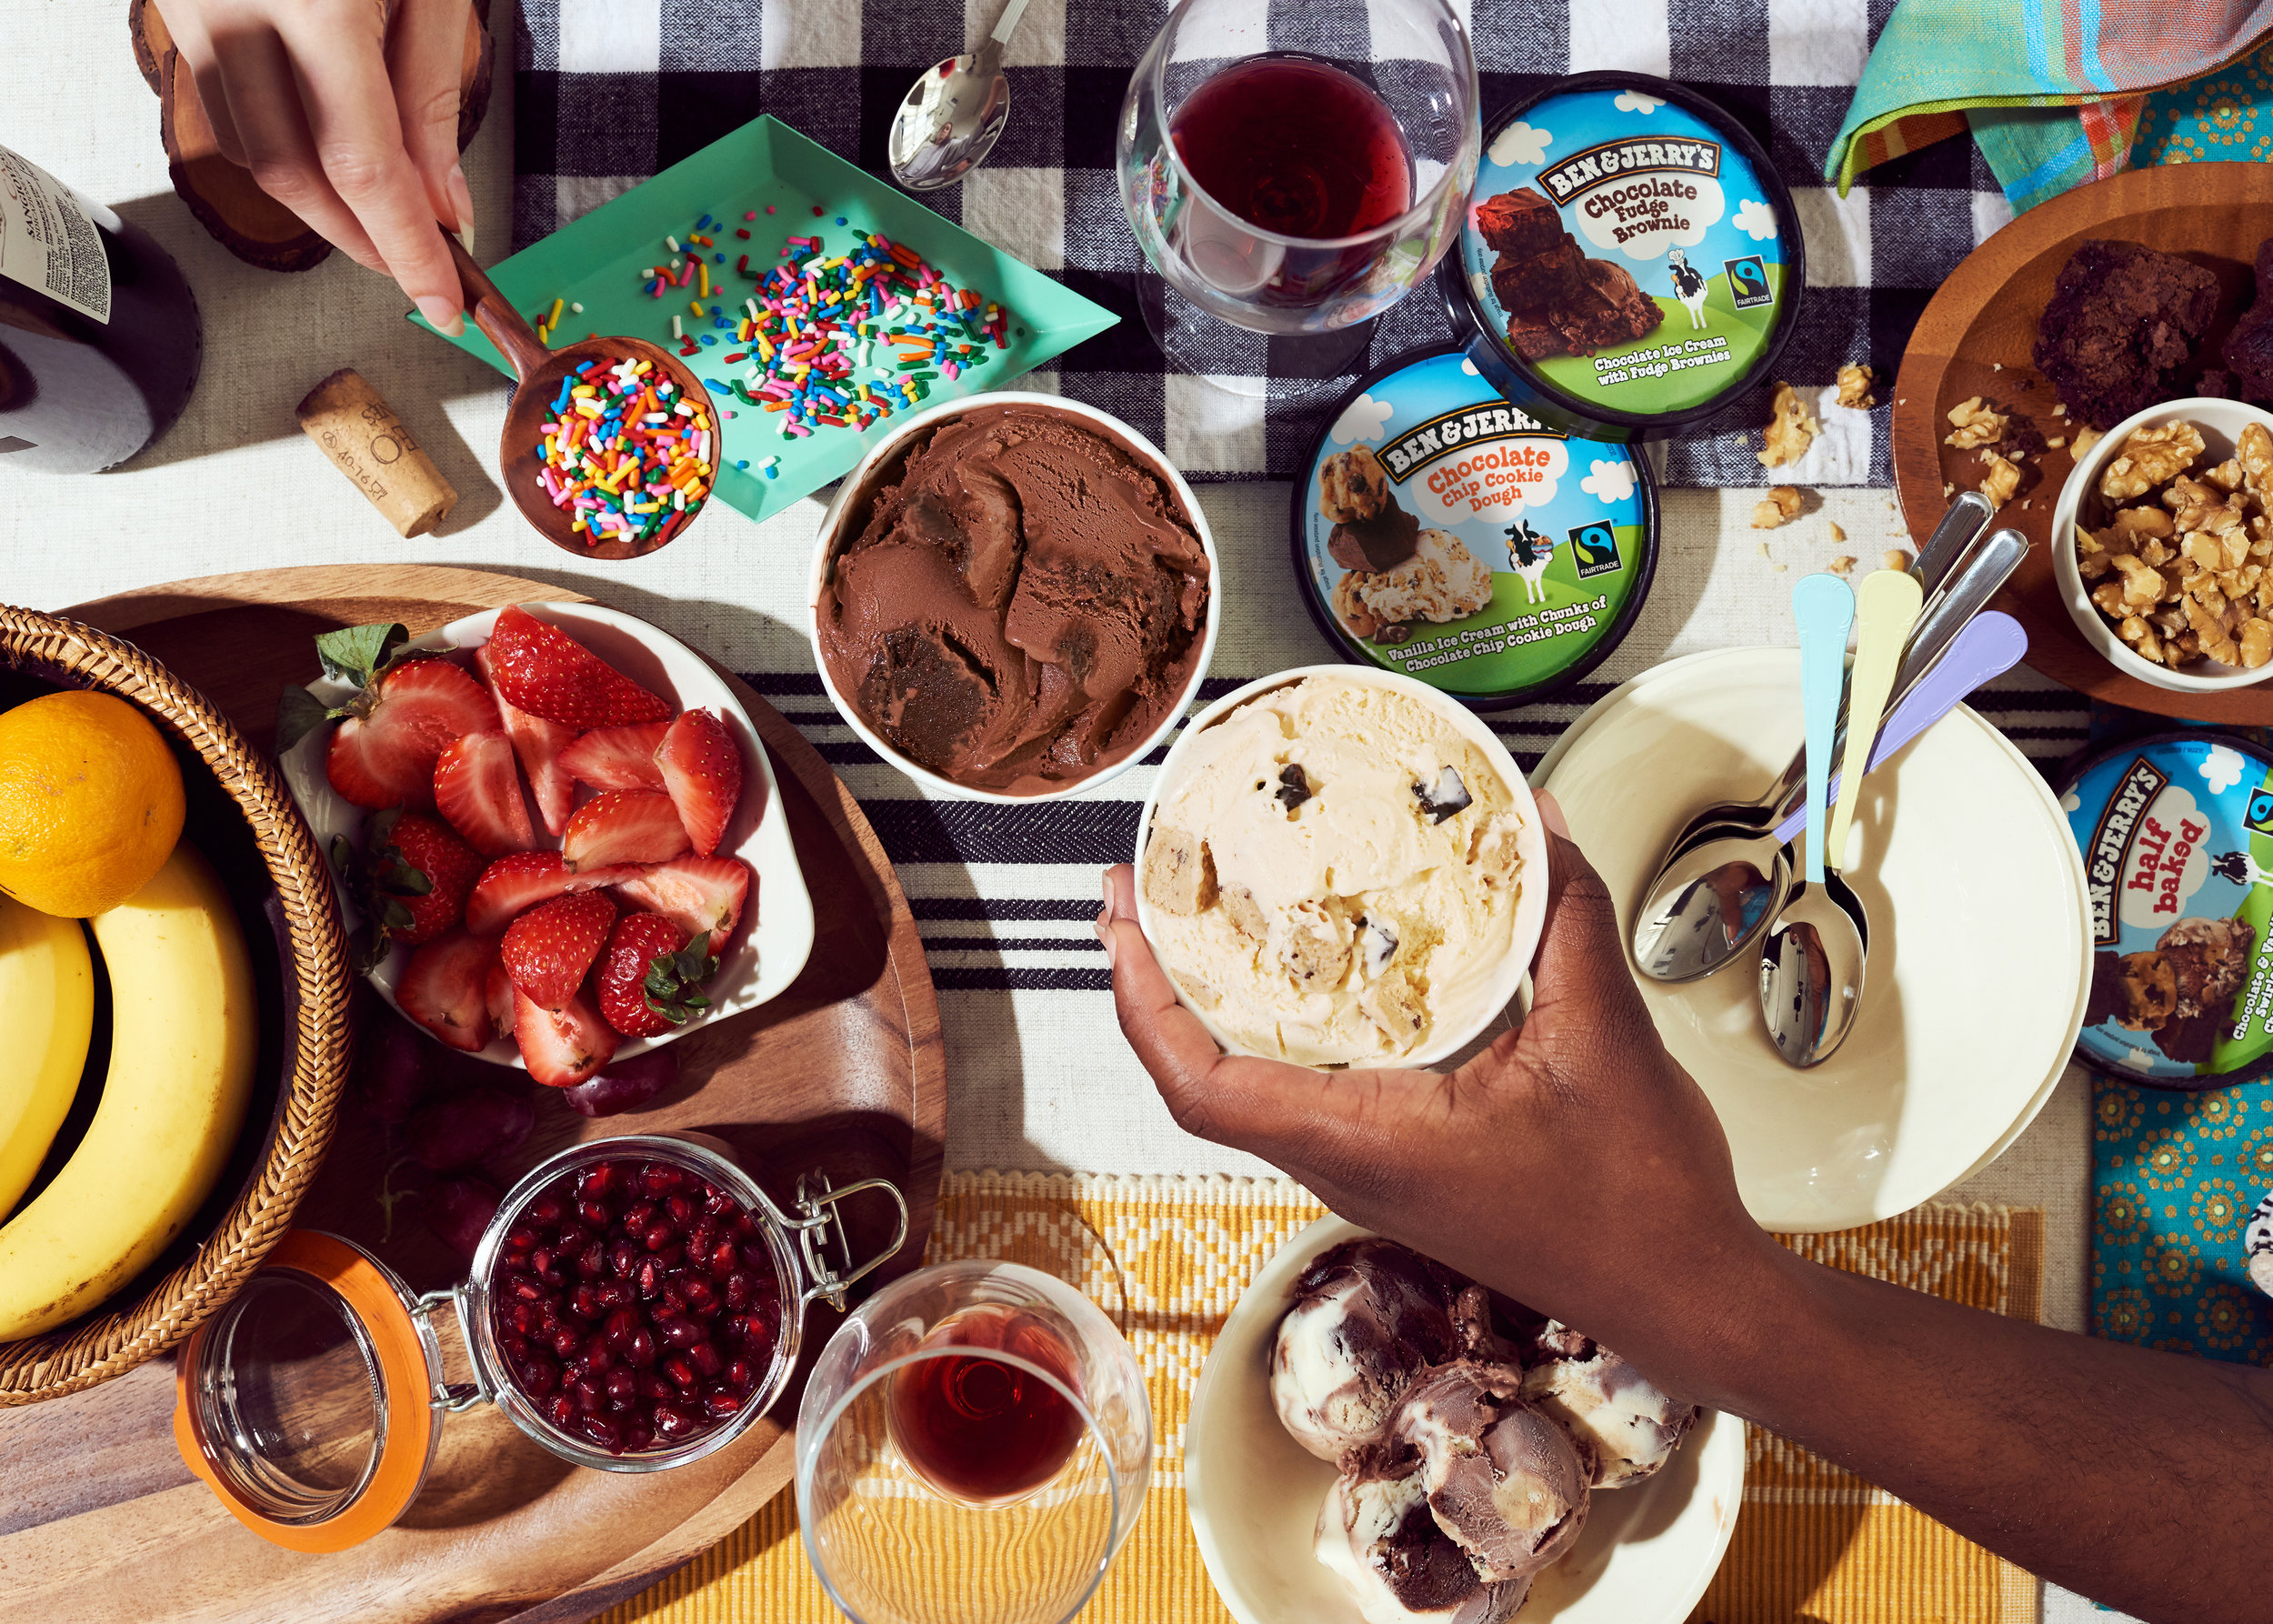 BNJ0074-AMET-Half_Baked-Cookie_Dough-Chocolate_Fudge_Brownie-Dinner_Party-H-16742-Large-5x7.jpg